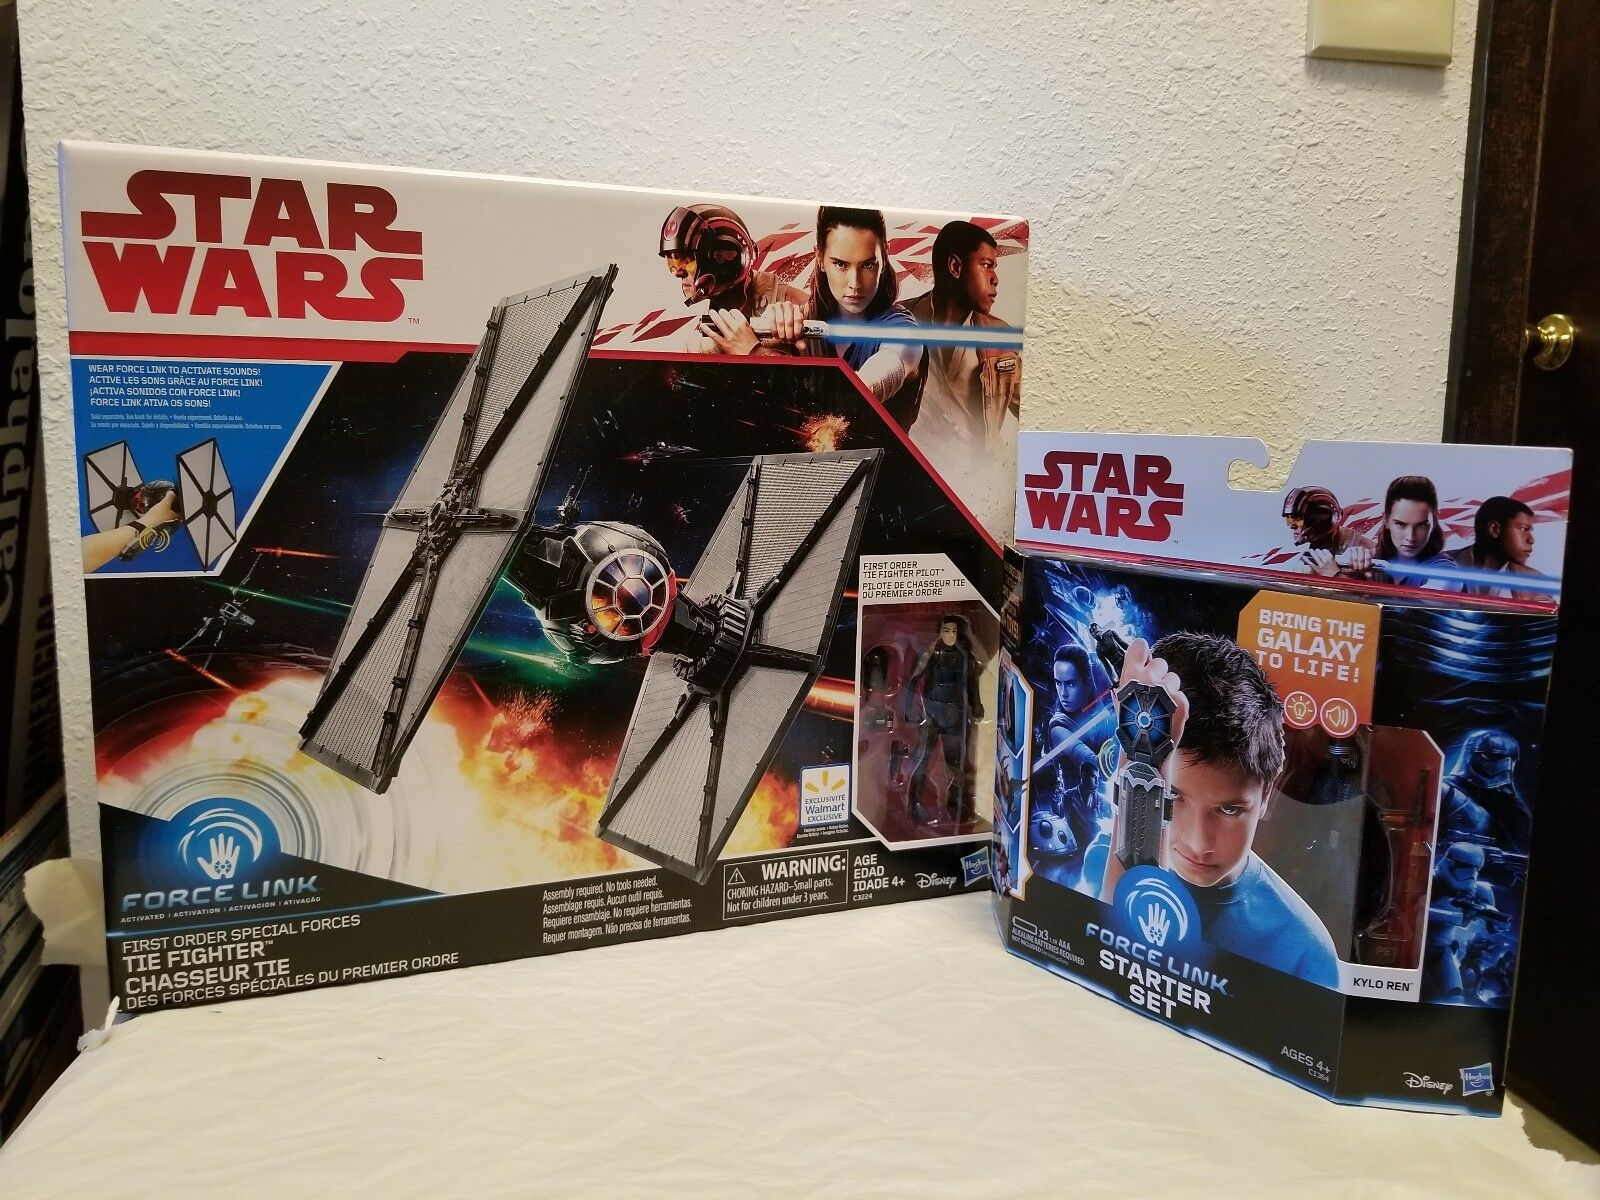 Star Wars Force Link First Order Special Forces Tie Fighter With Force Link...